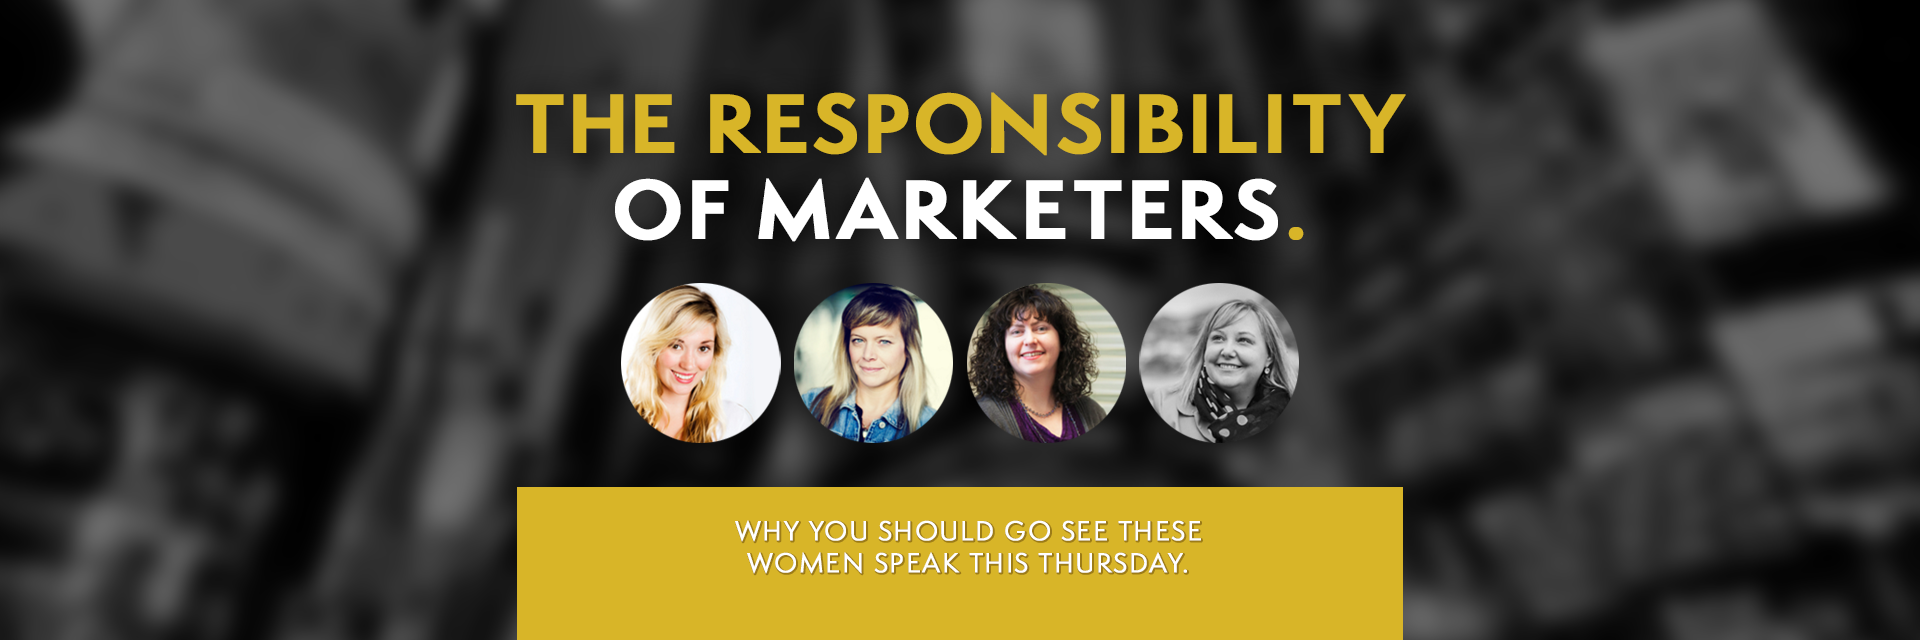 The Responsibility of Marketers